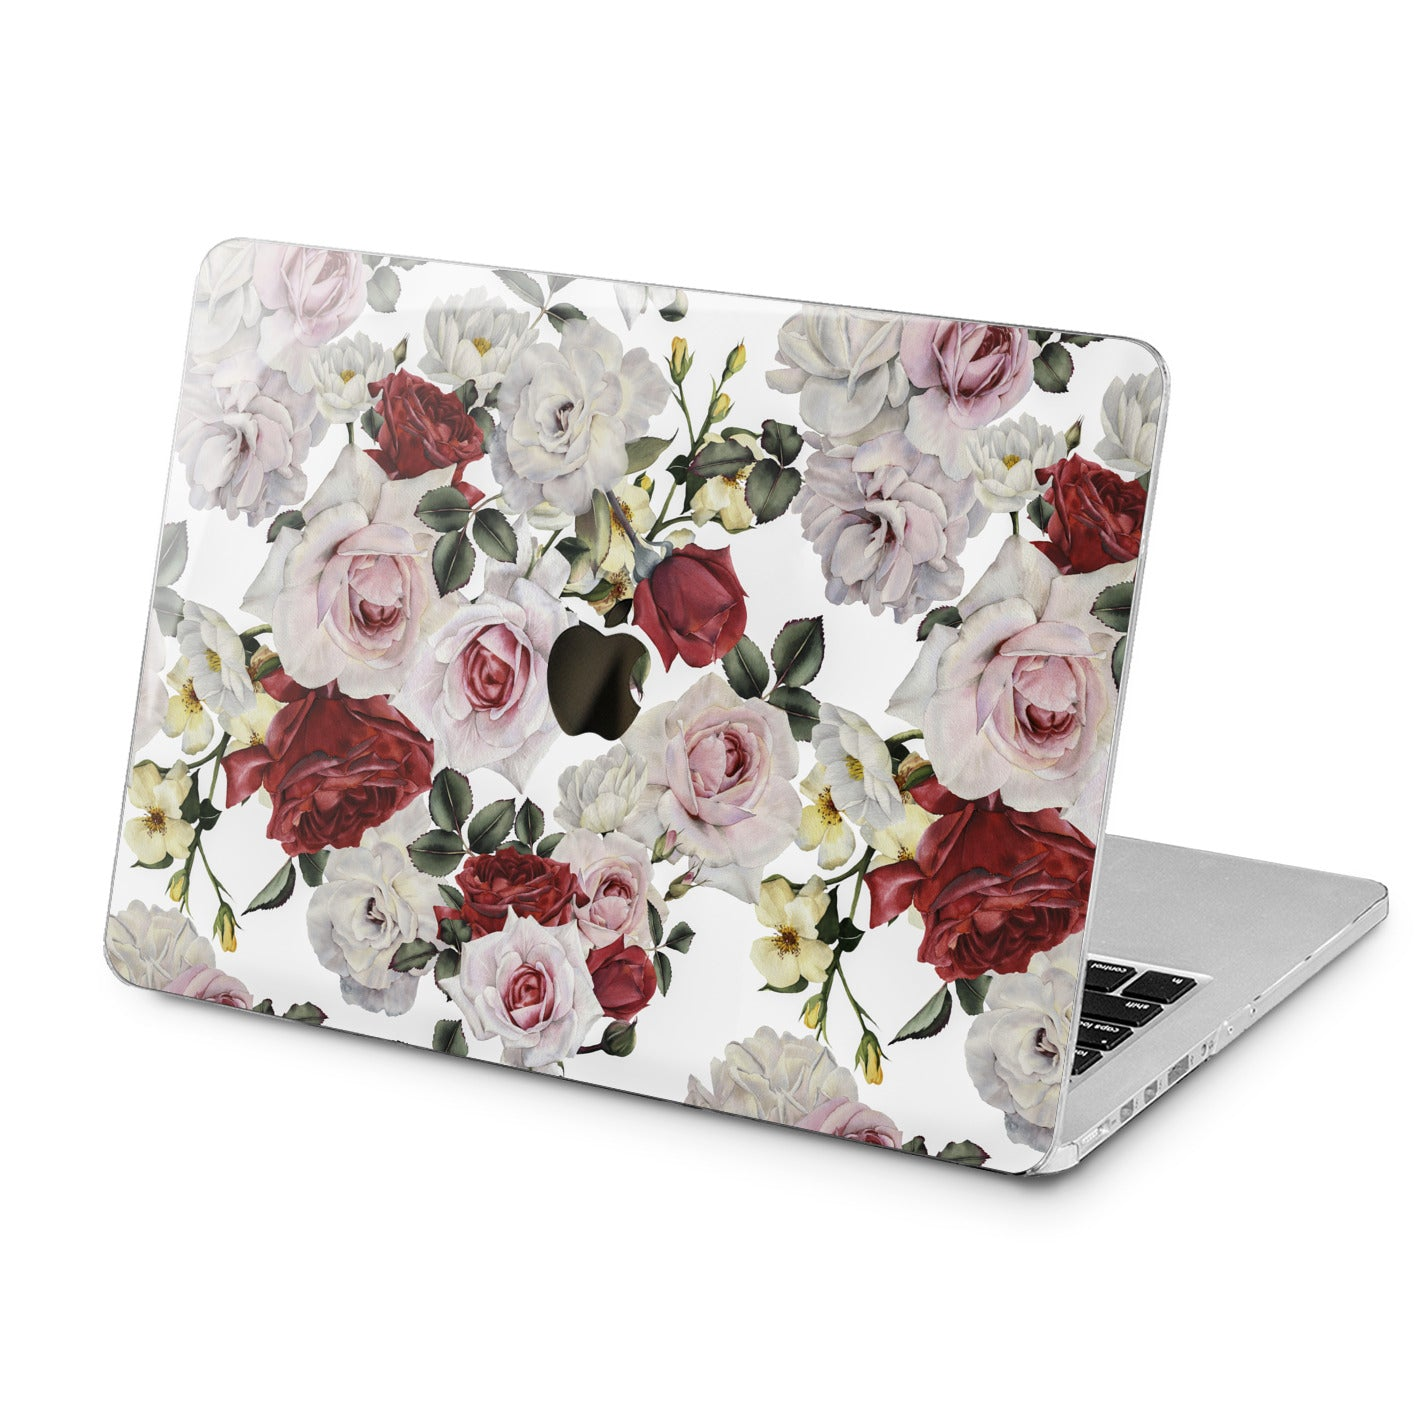 Lex Altern White Roses Print Case for your Laptop Apple Macbook.